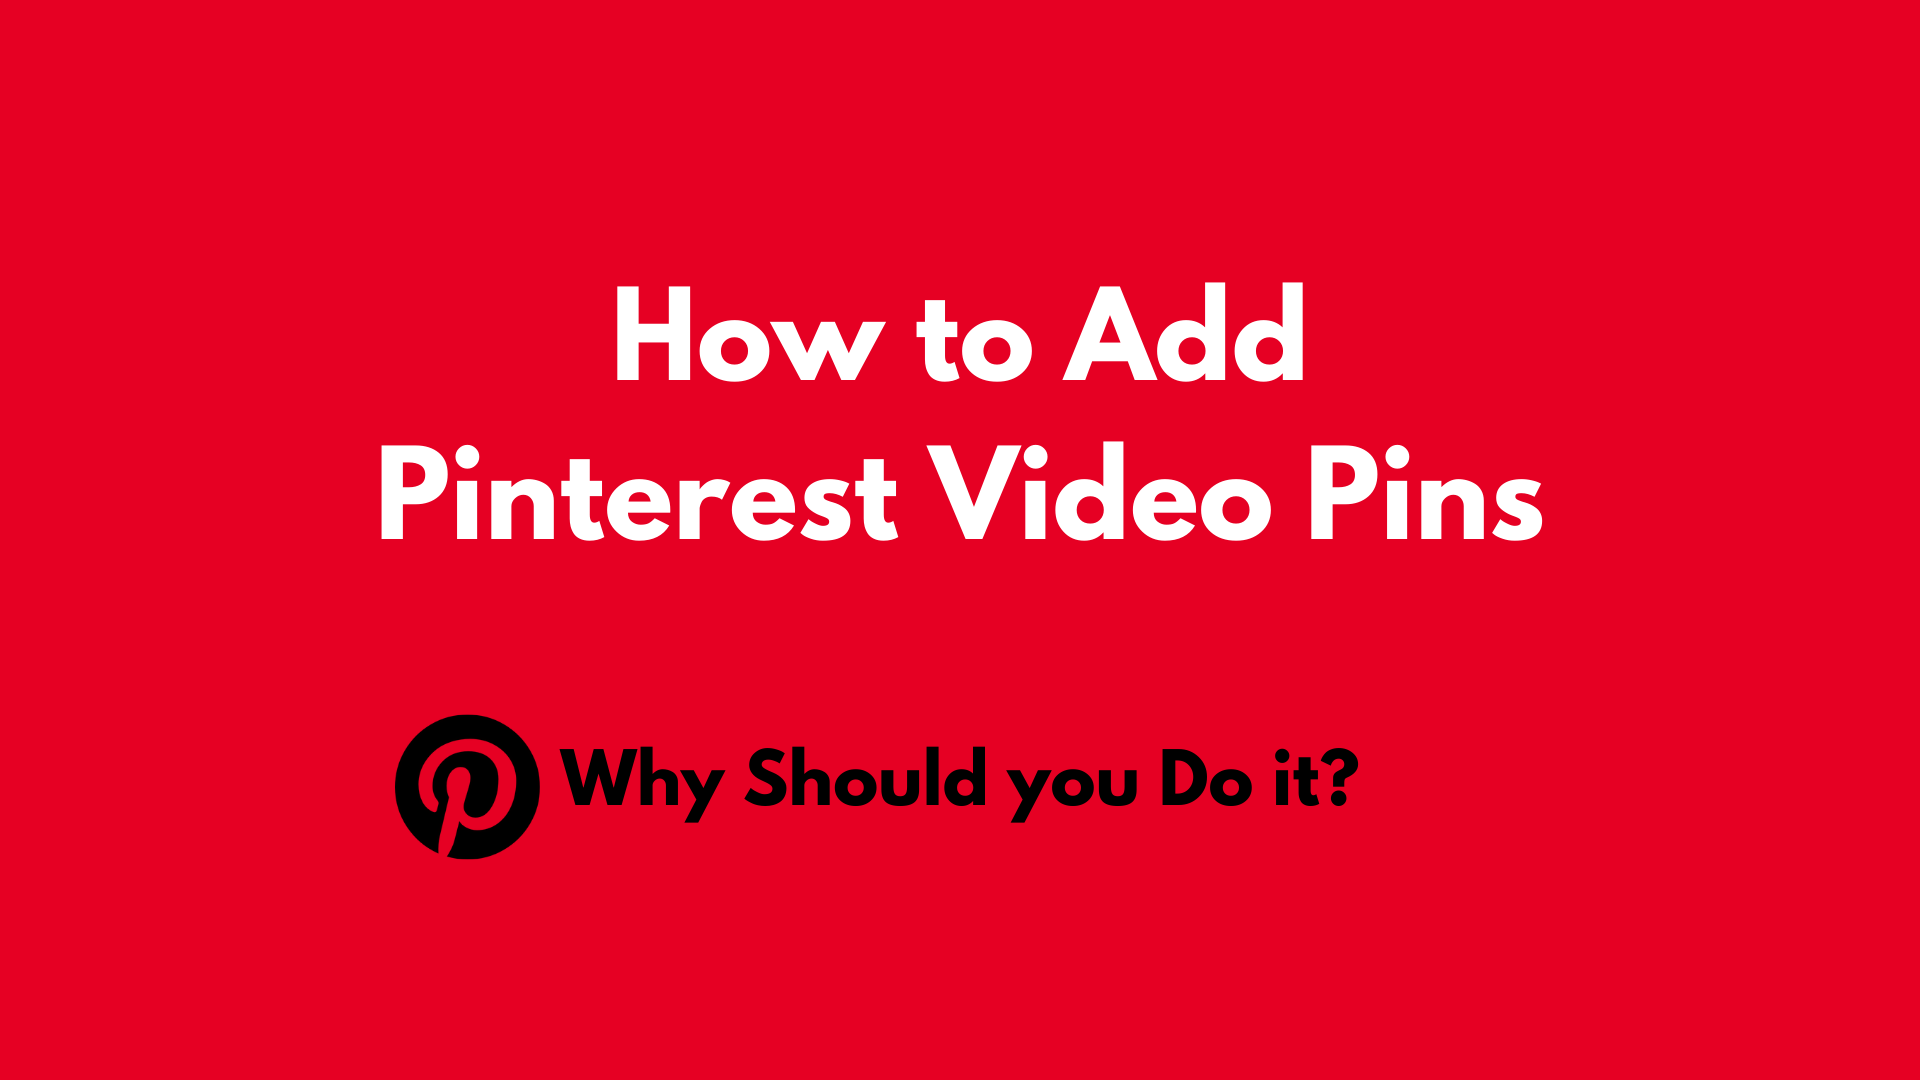 How to Add Pinterest Video Pins